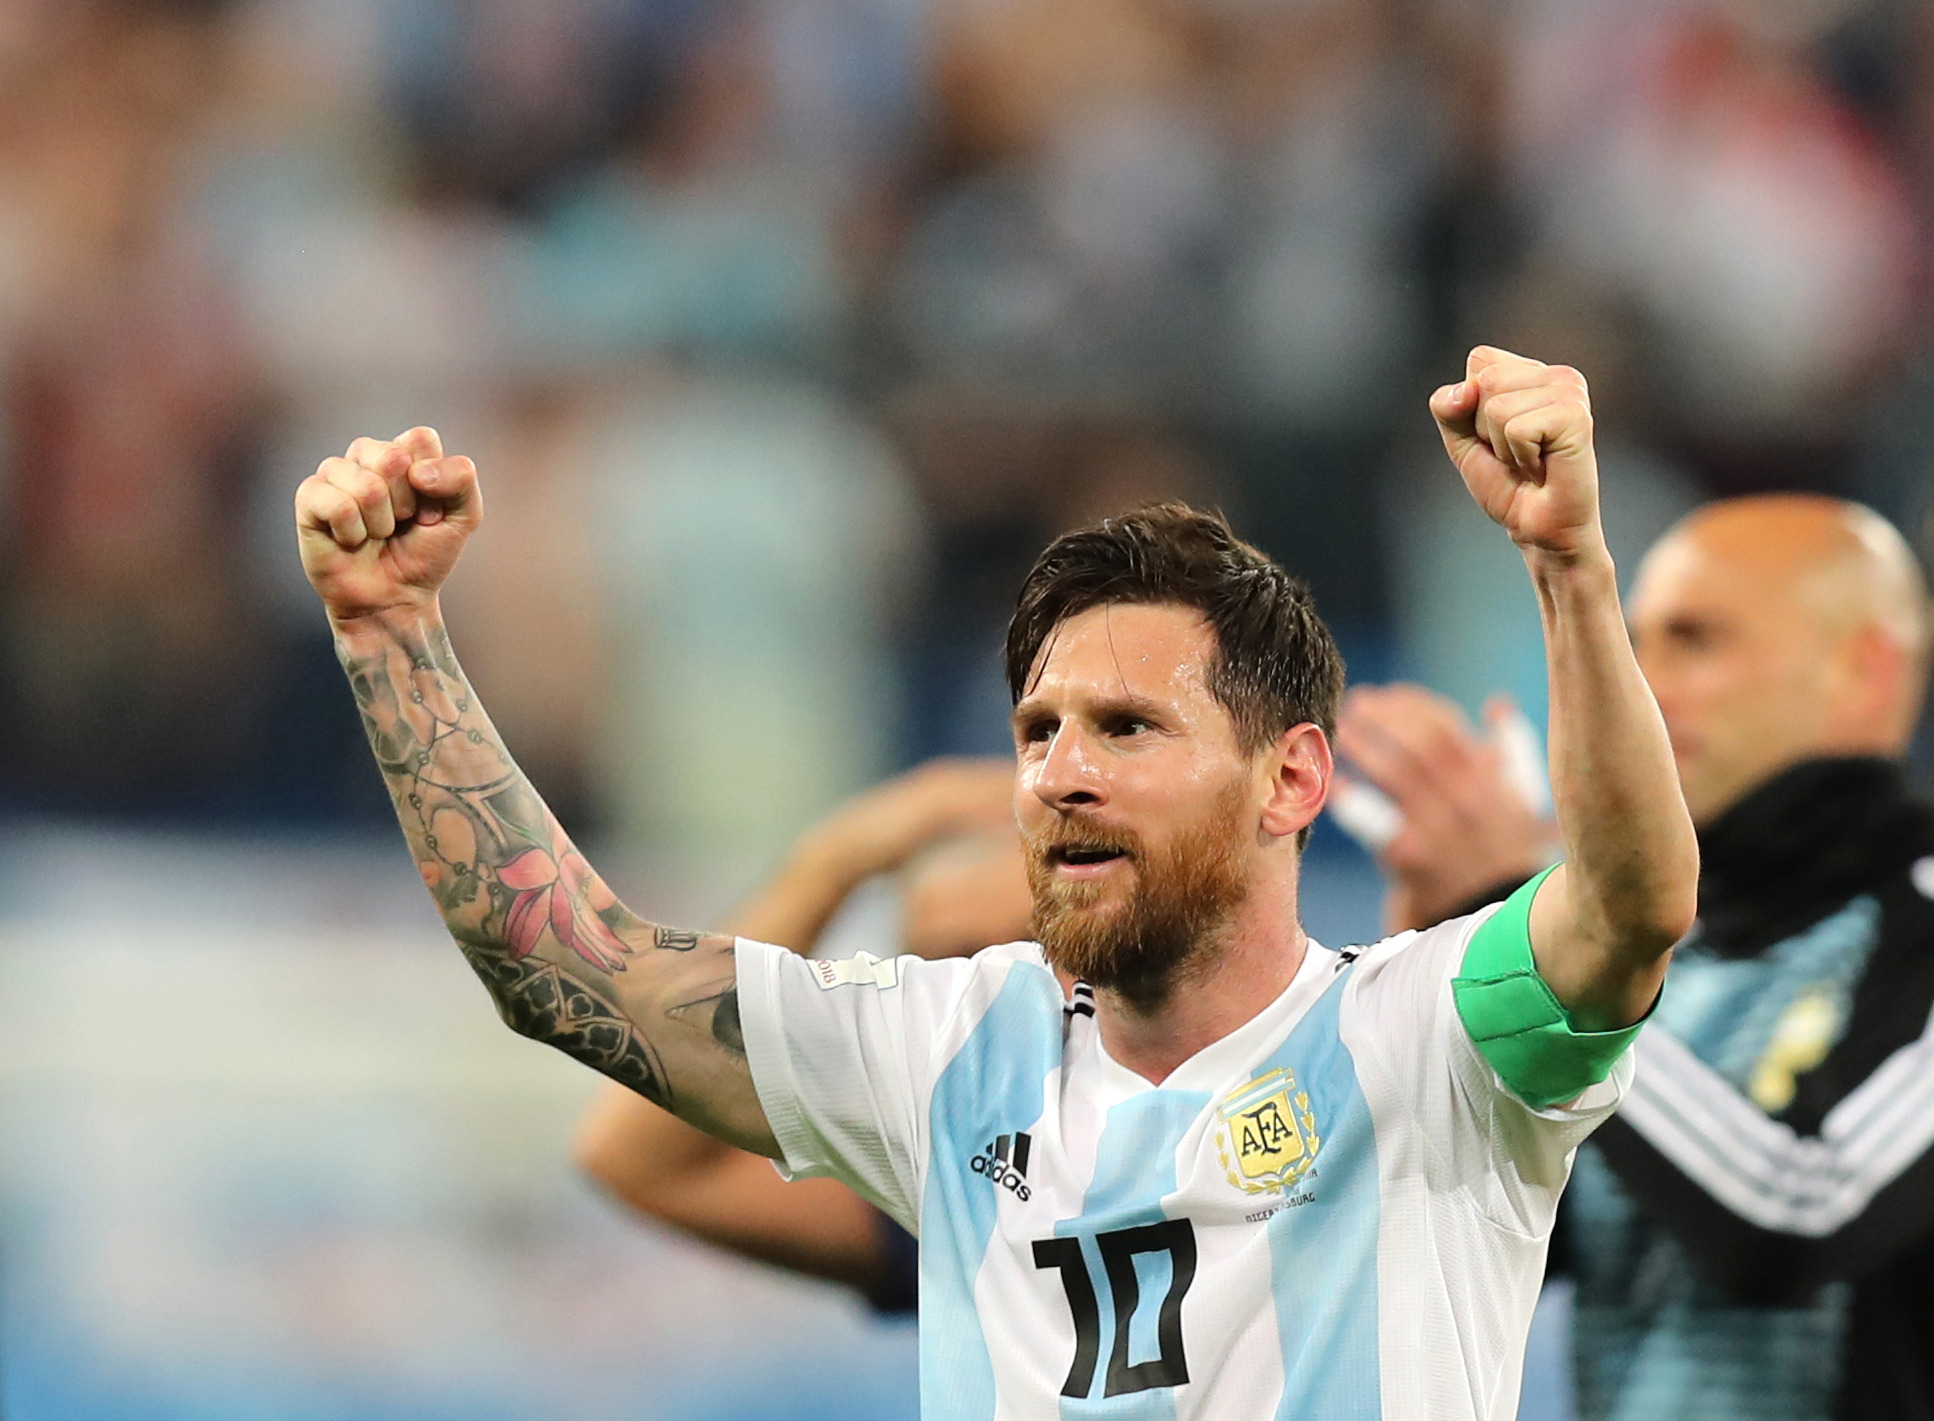 Will we witness Messi vs Ronaldo at this World Cup?